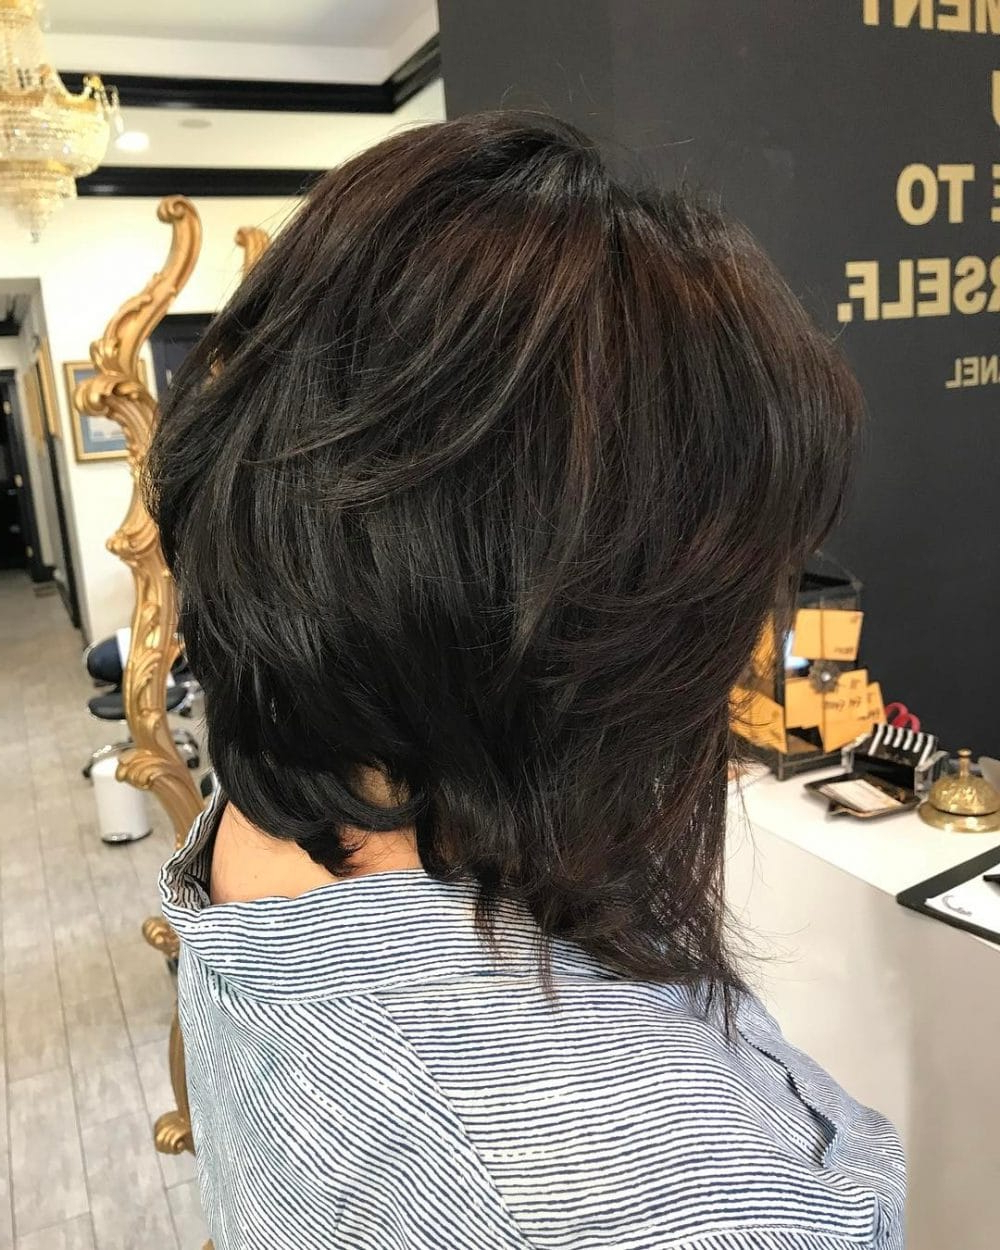 23 Modern Shag Haircuts To Try In 2018 For Black Curly Inverted Bob Hairstyles For Thick Hair (View 14 of 20)